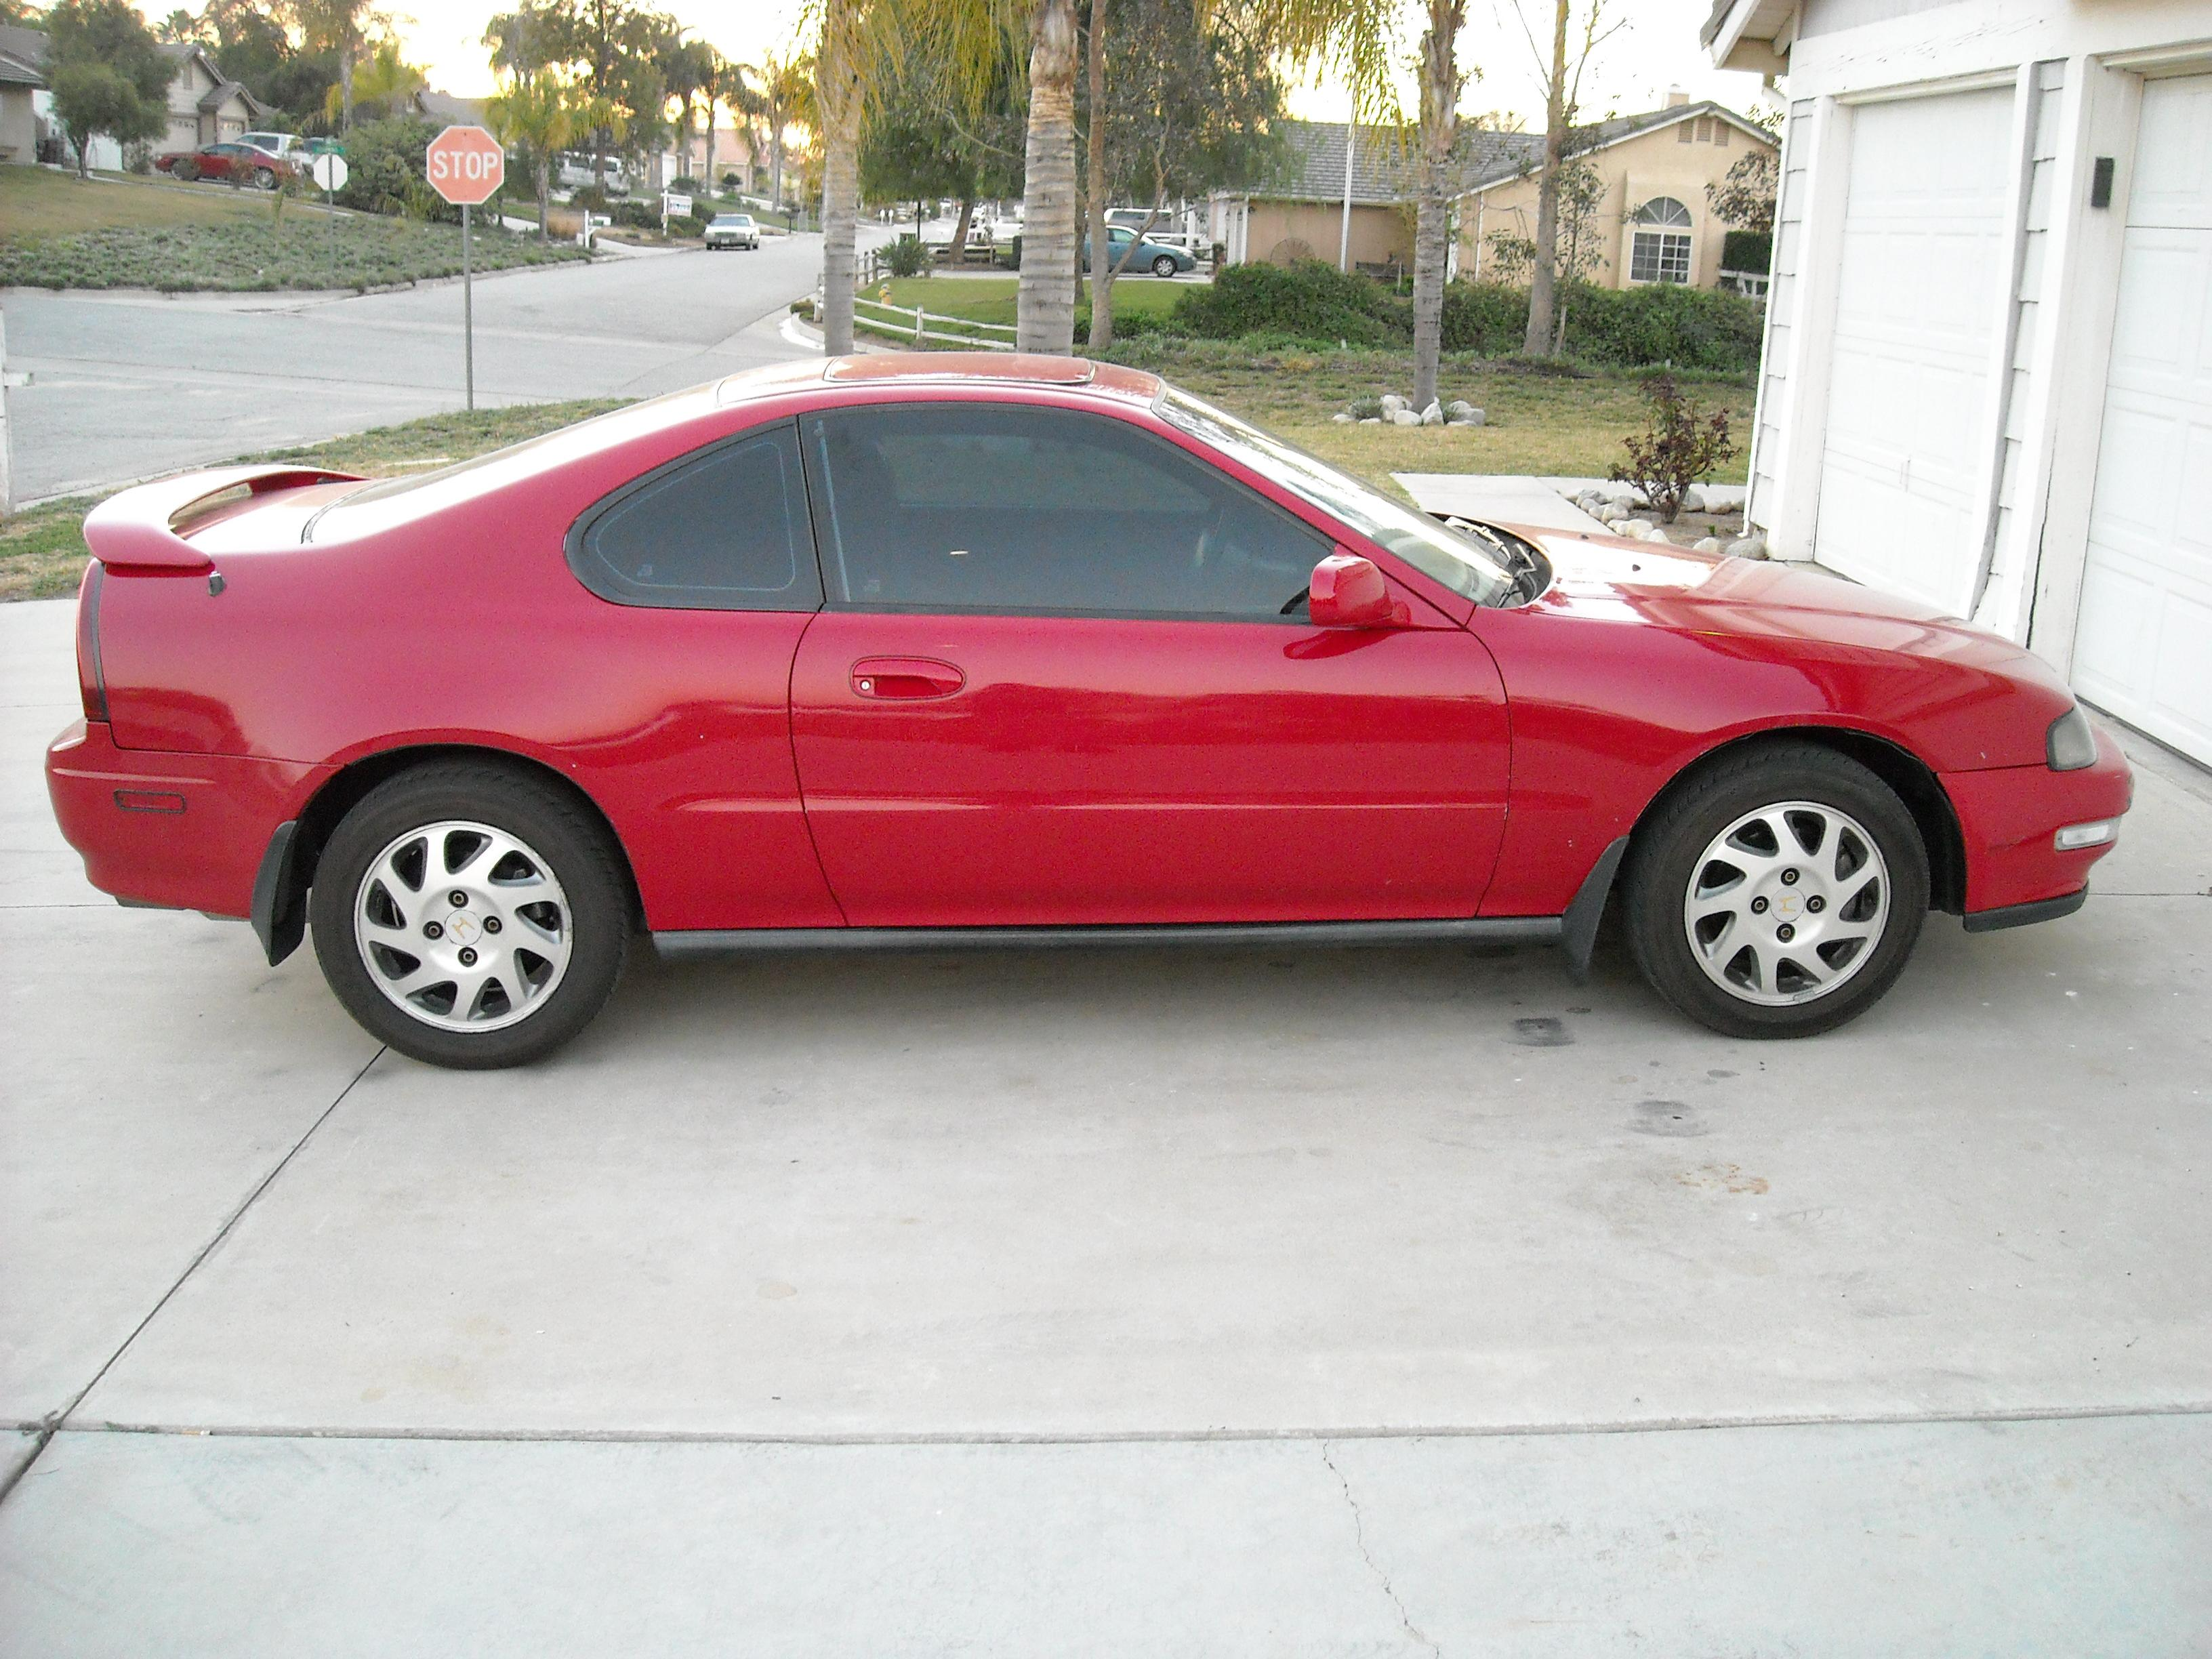 Awesome ... 95SR V 1995 Honda Prelude 39067824001_original ...